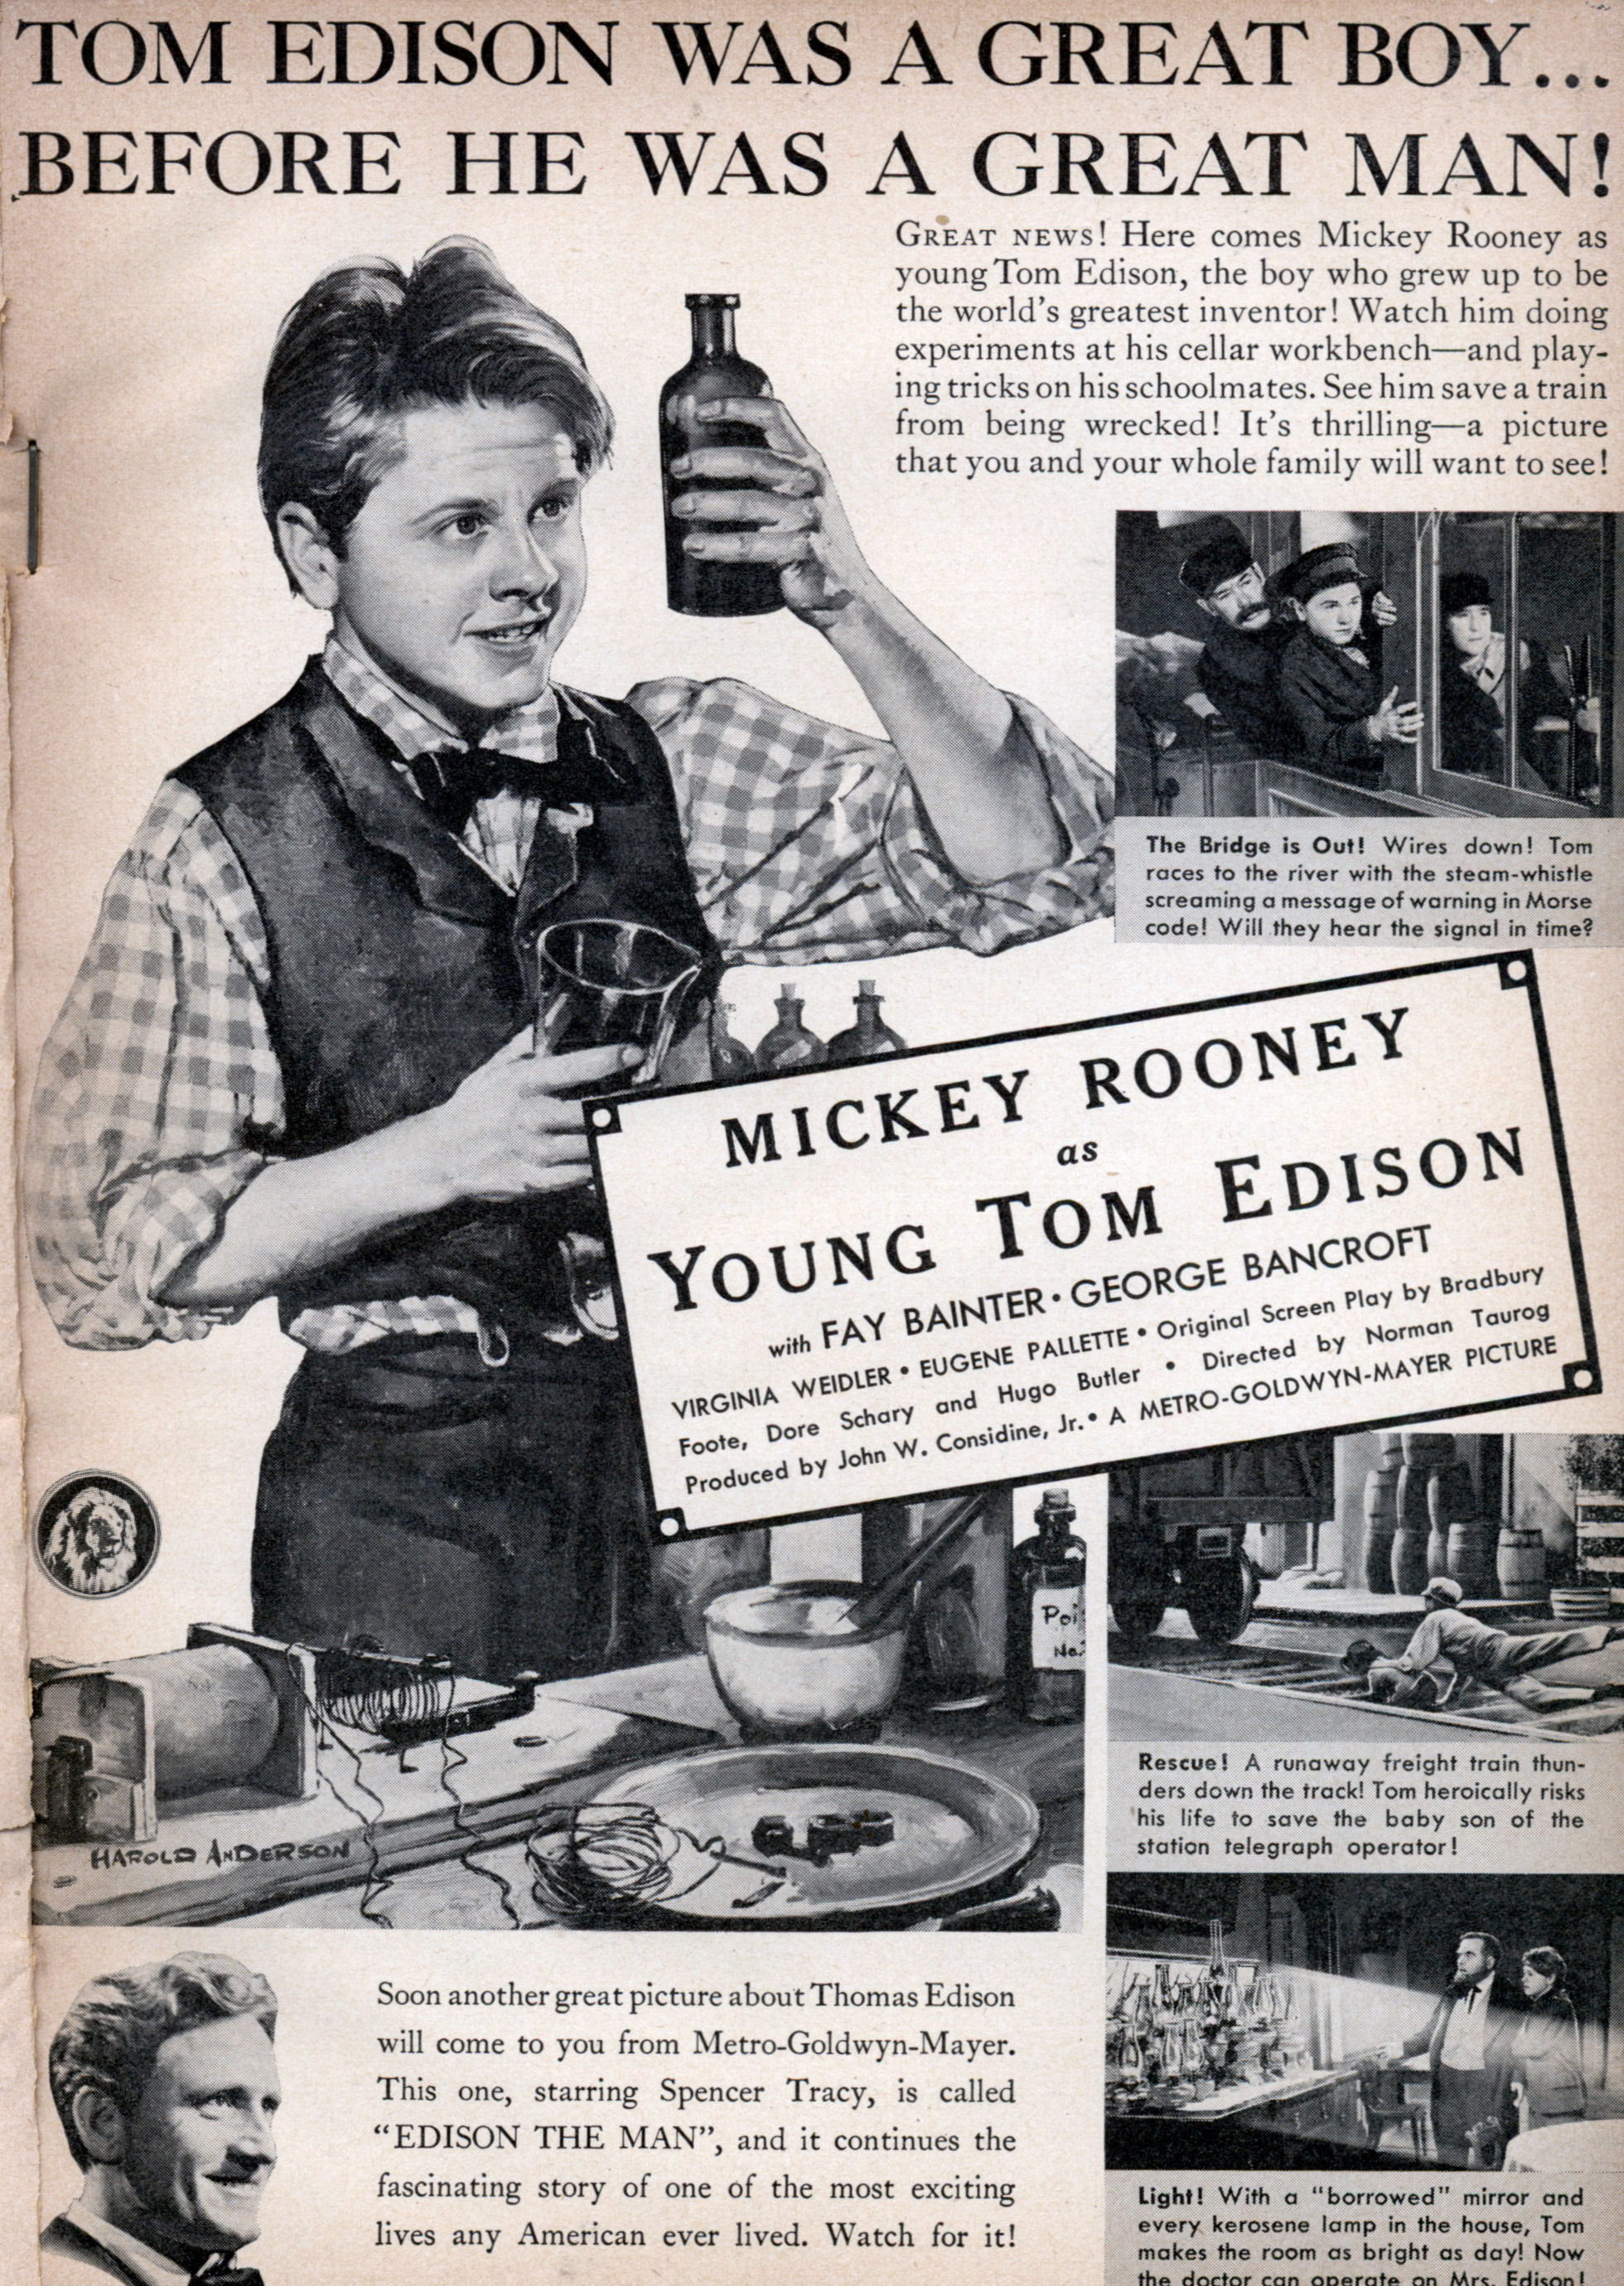 MICKEY ROONEY as Young Tom Edison | Modern Mechanix